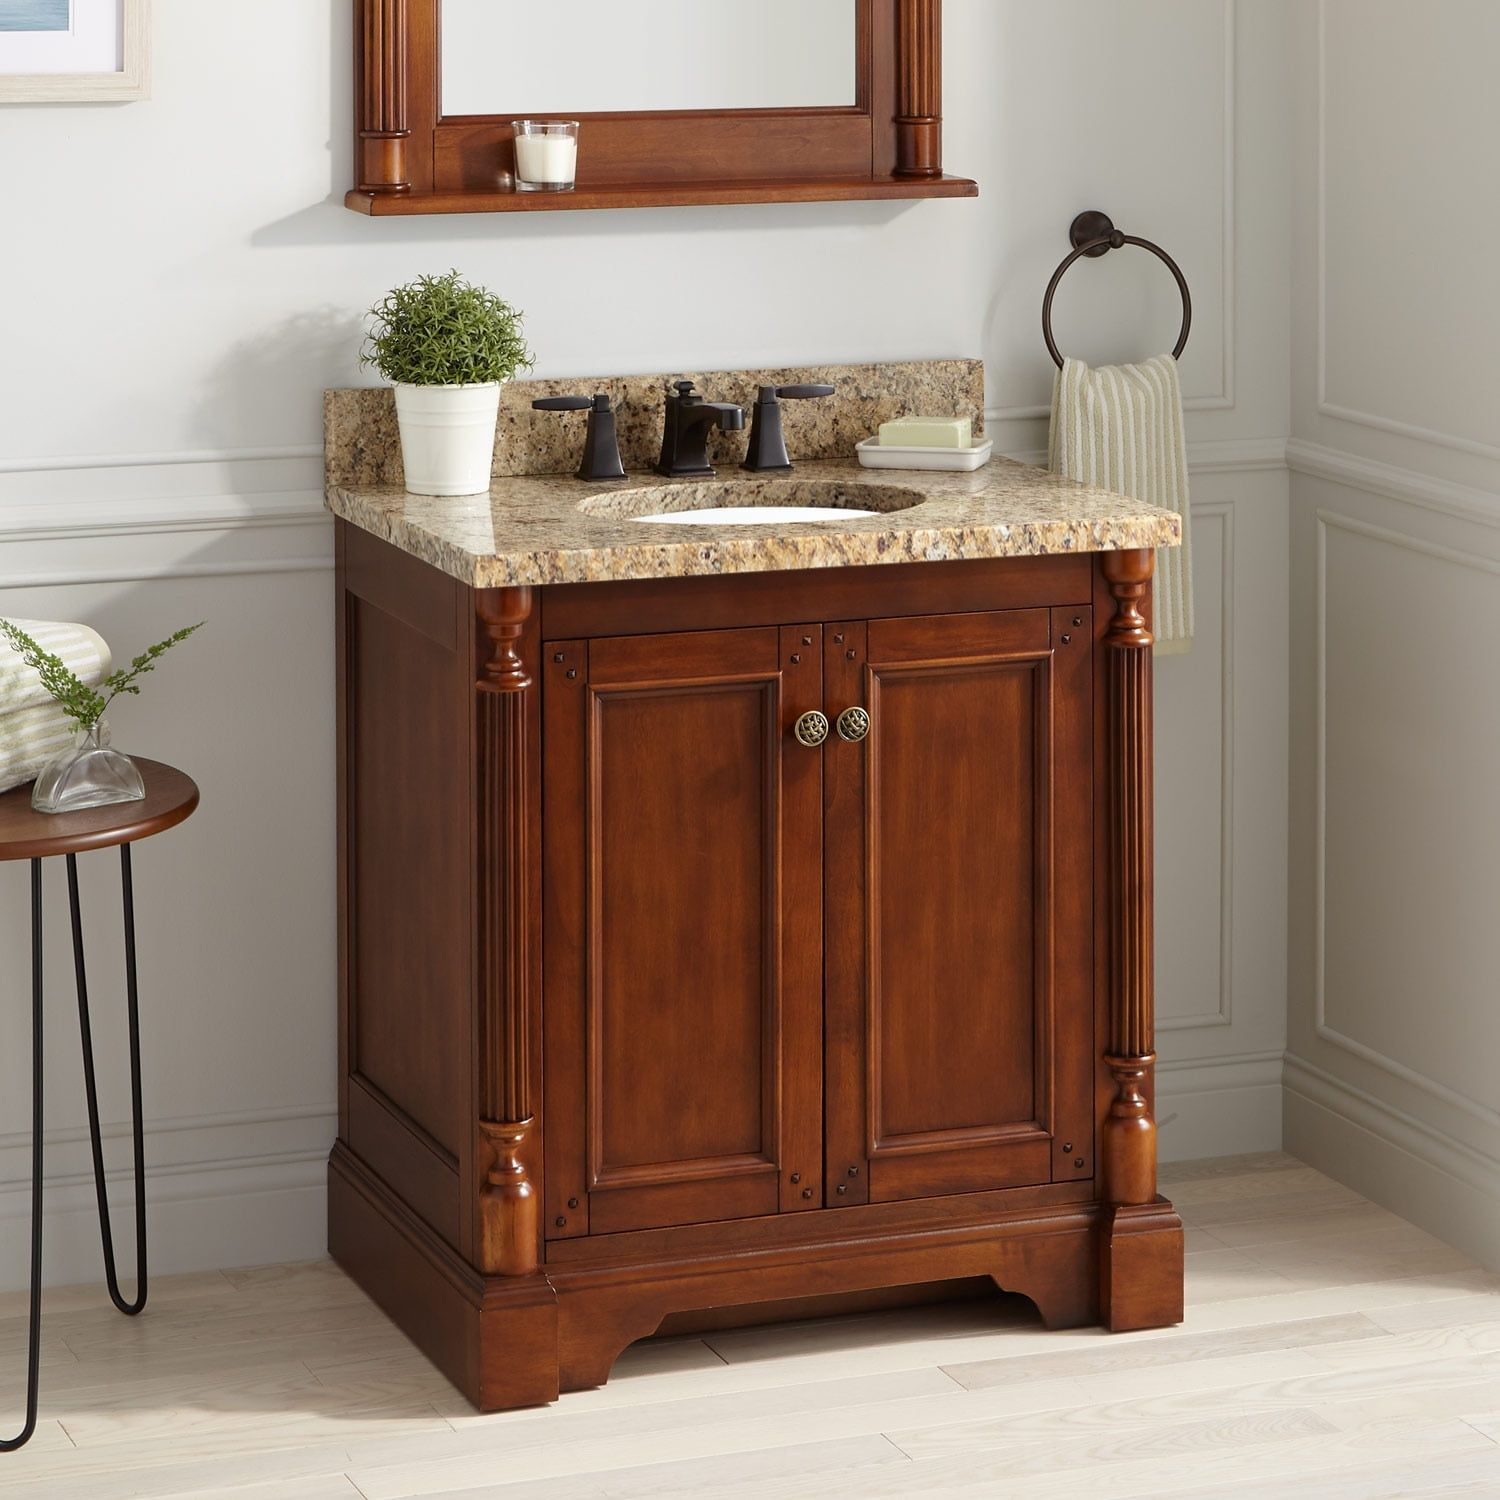 The classic walnut Trevett Vanity for Undermount Sink adds